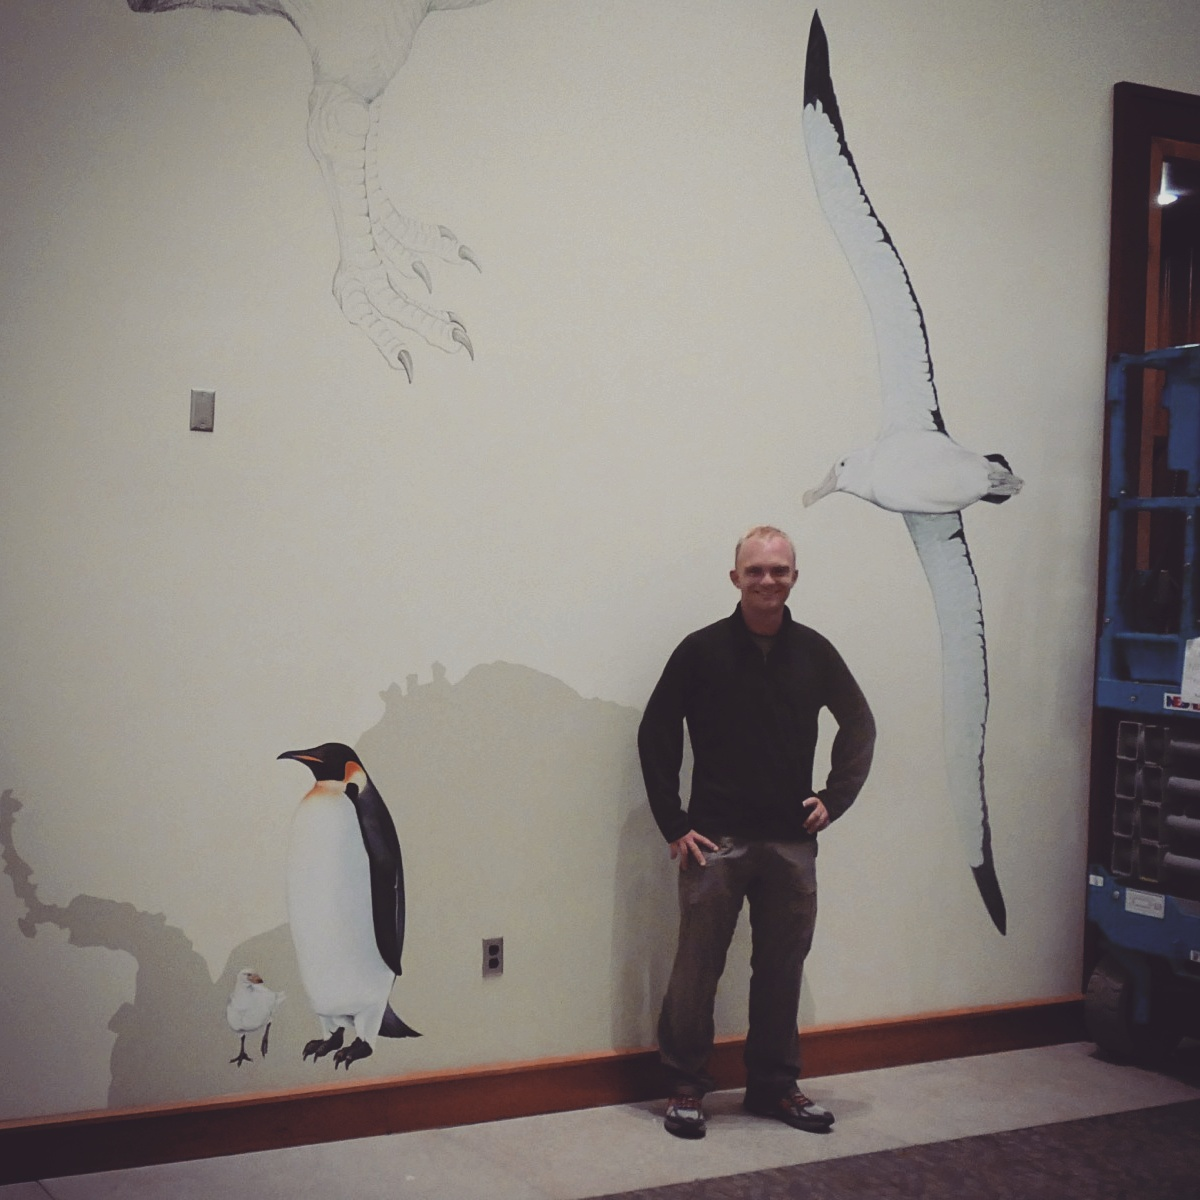 Noah admires a mural in progress at the Cornell Lab of Ornithology. Noah Strycker